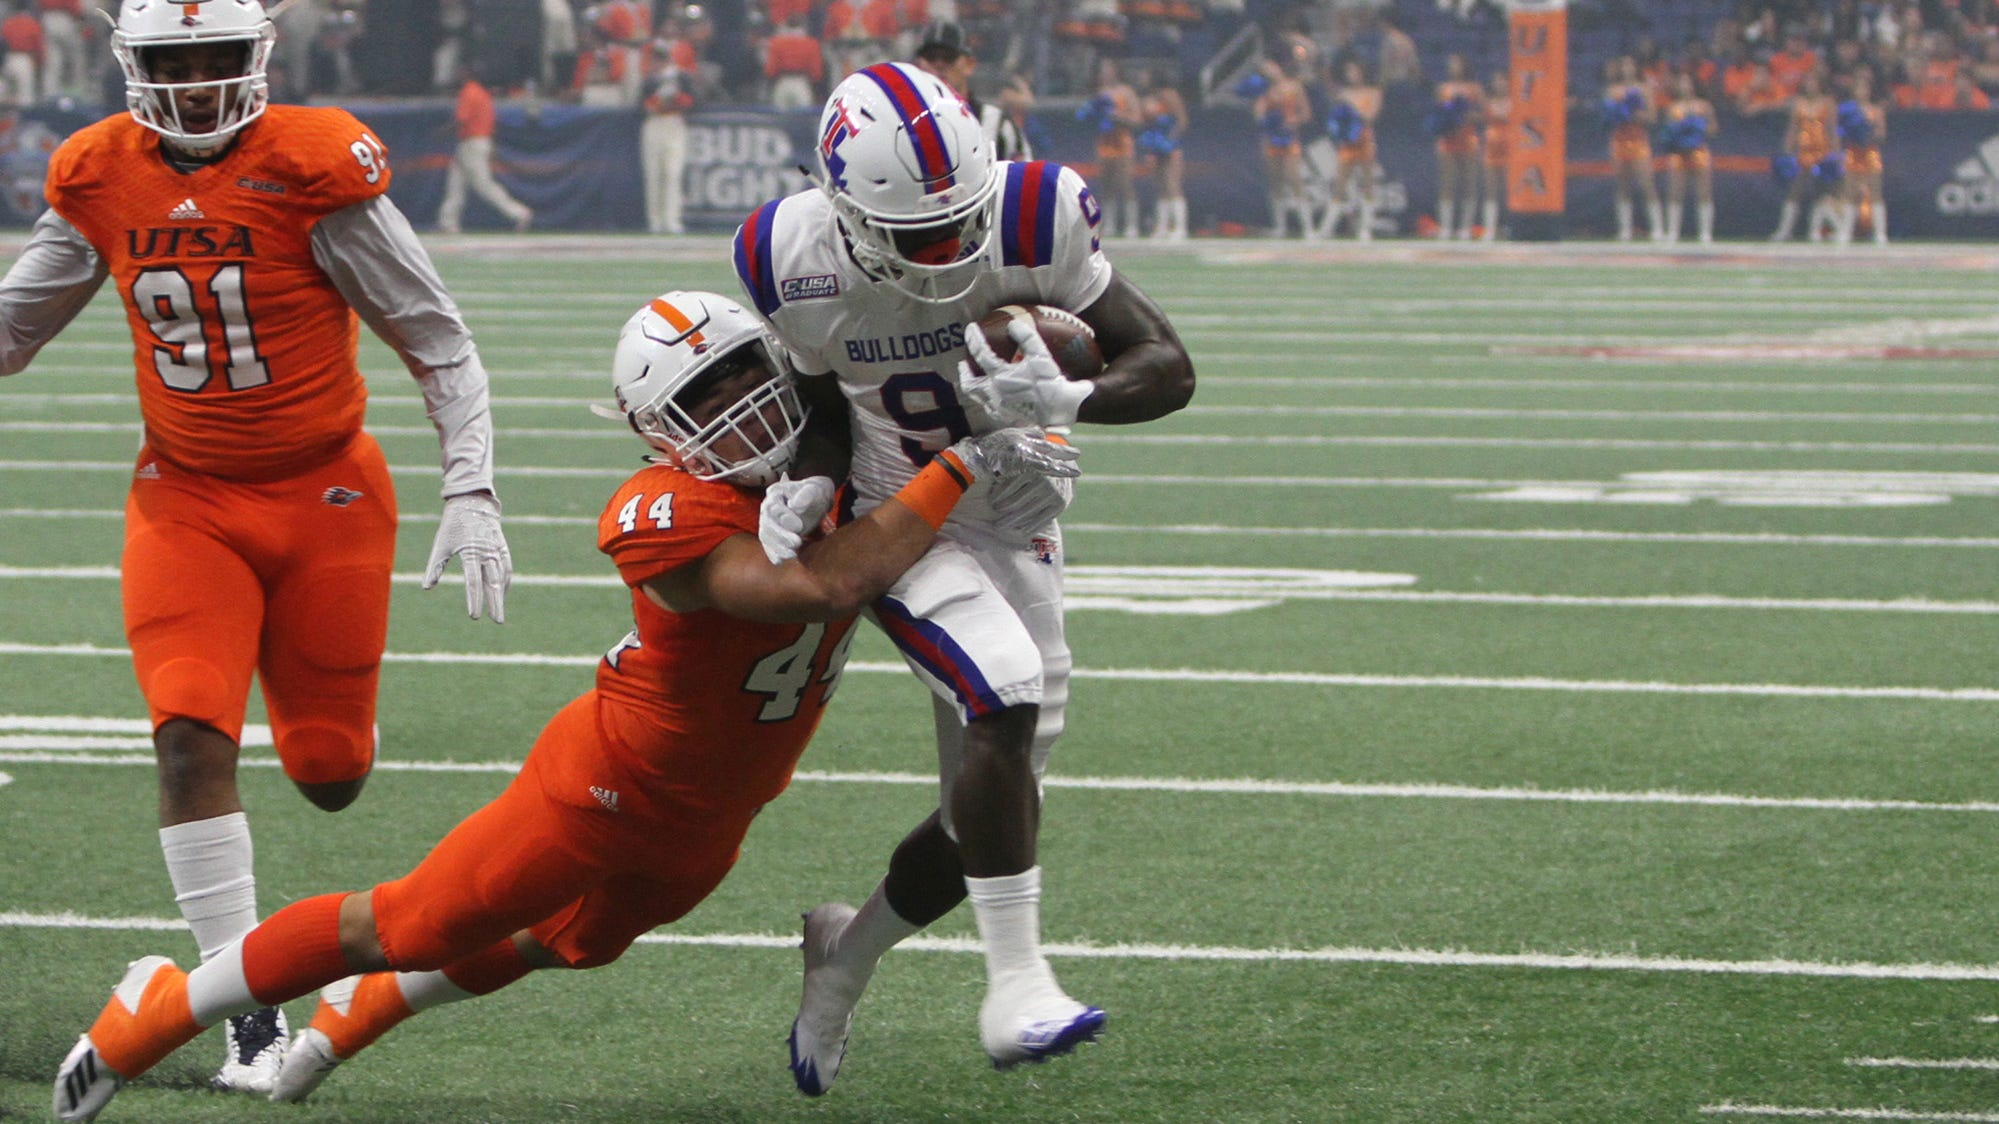 Louisiana Tech senior receiver Teddy Veal (9) fights for extra yardage versus UTSA Saturday, Oct. 13, 2018 at the Alamodome.